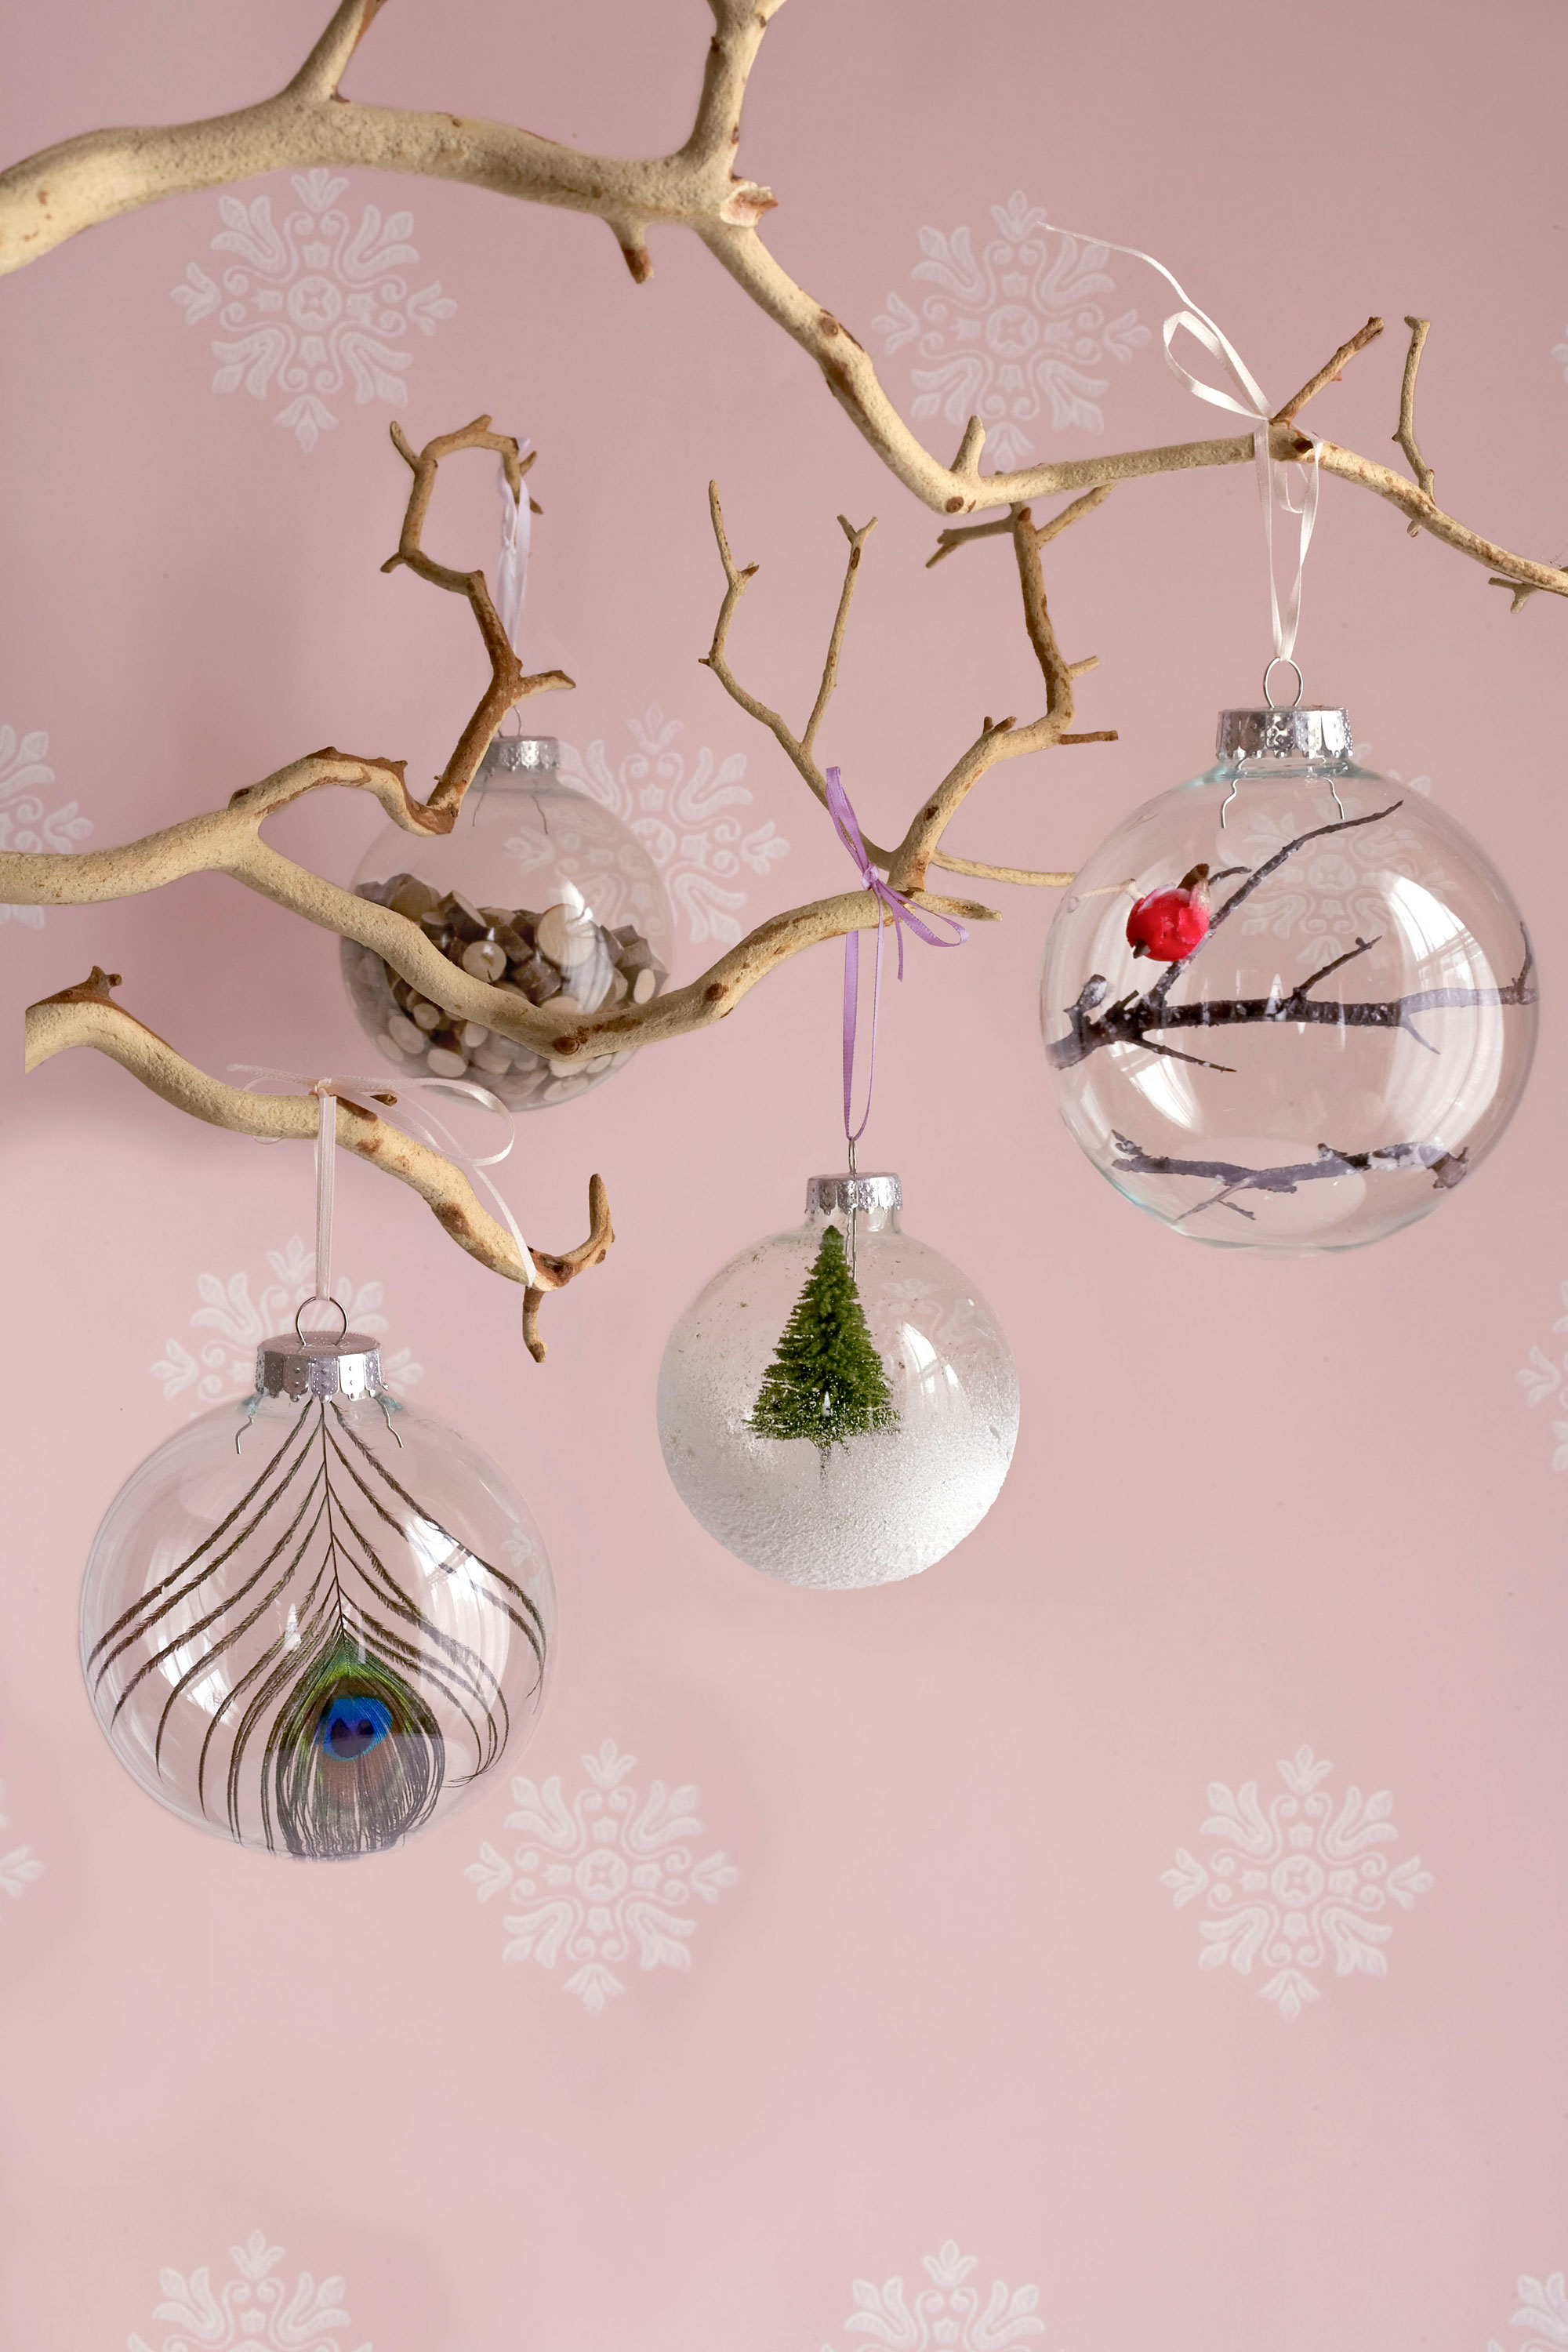 30 Easy Christmas Crafts For Adults To Make  Diy Ideas For Holiday Craft  Projects